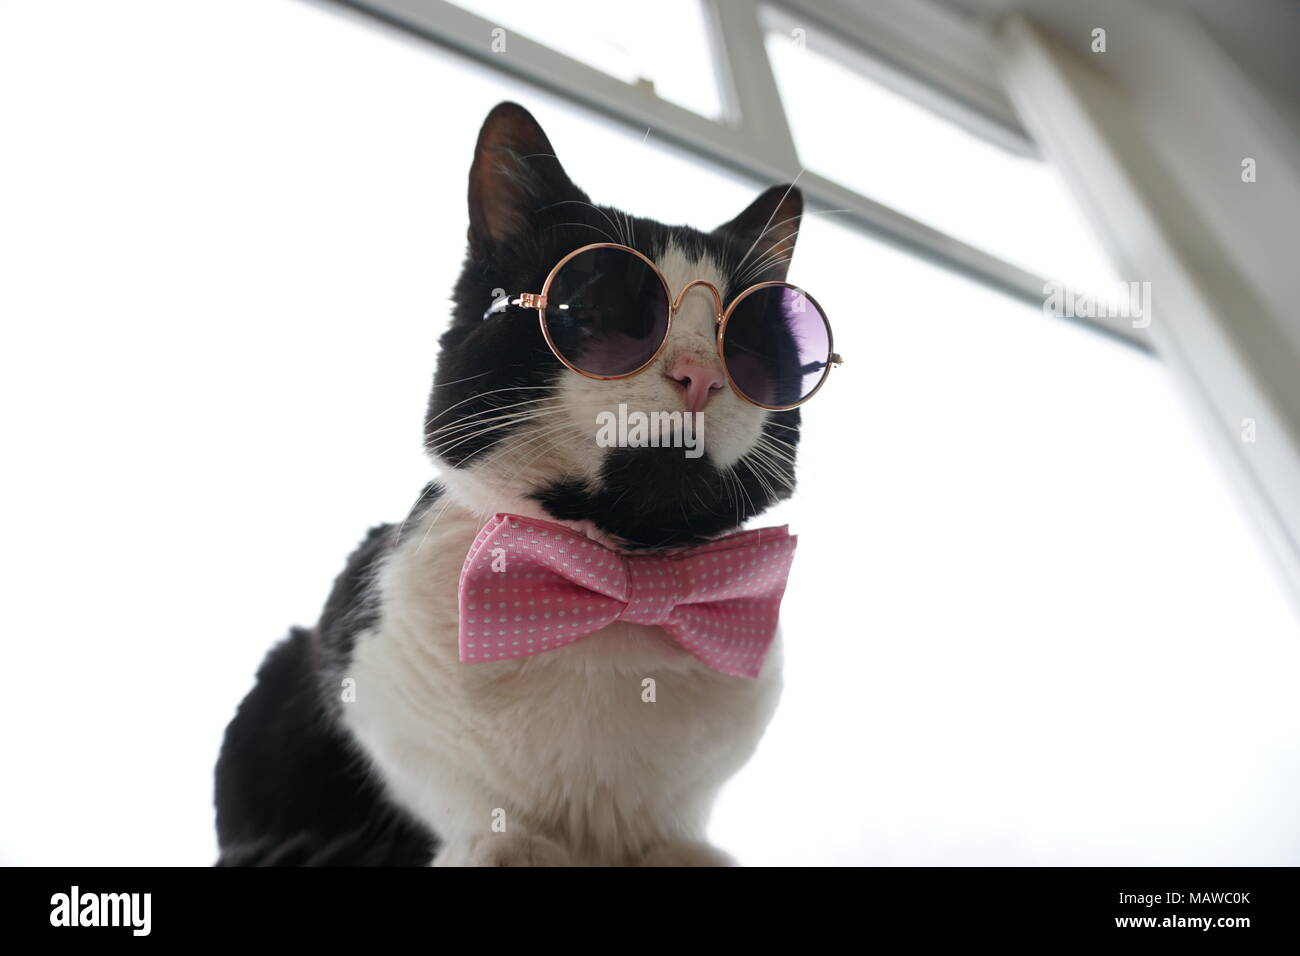 3e37d355c062 Black & White Cat with glasses and bow tie Stock Photo: 178808467 ...